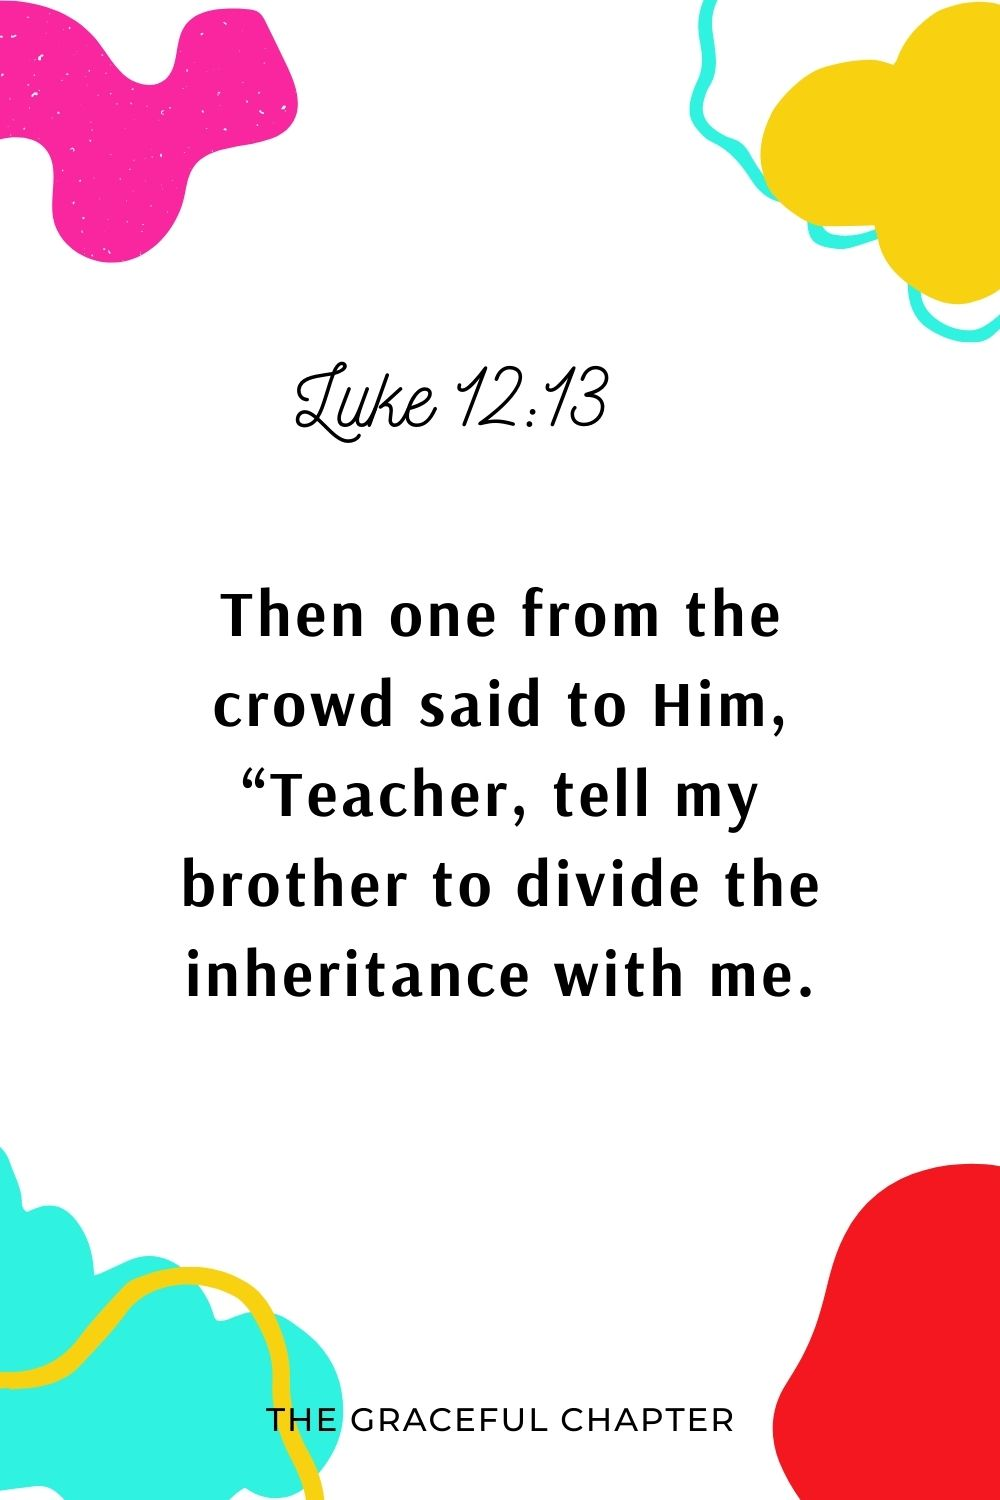 """Then one from the crowd said to Him, """"Teacher, tell my brother to divide the inheritance with me."""" Luke 12:13"""